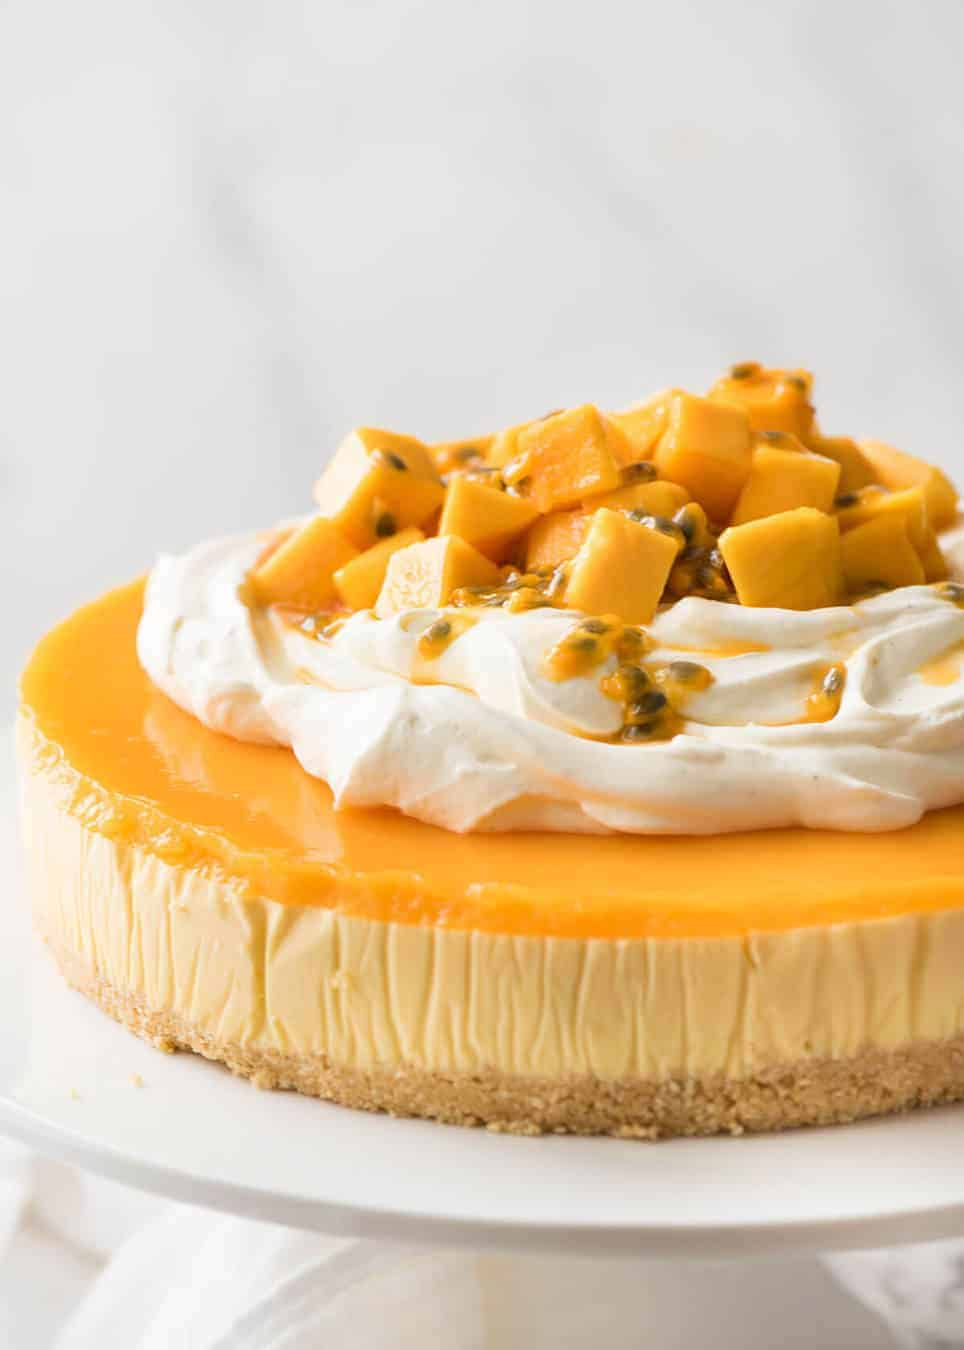 No Bake Mango Cheesecake RecipeTin Eats